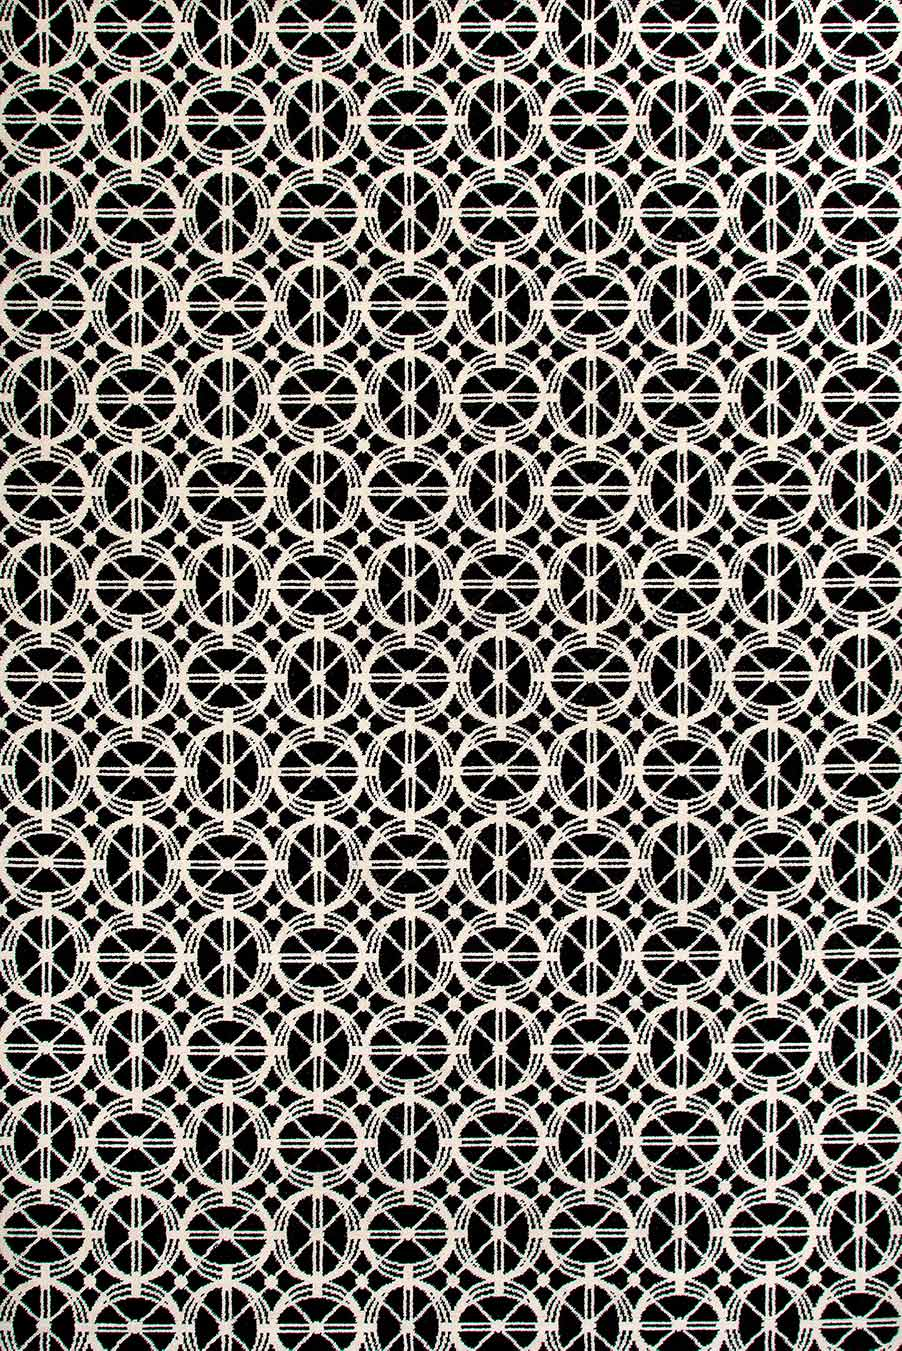 Overhead view of Emilio black and white patterned Axminster carpet by Greg Natale